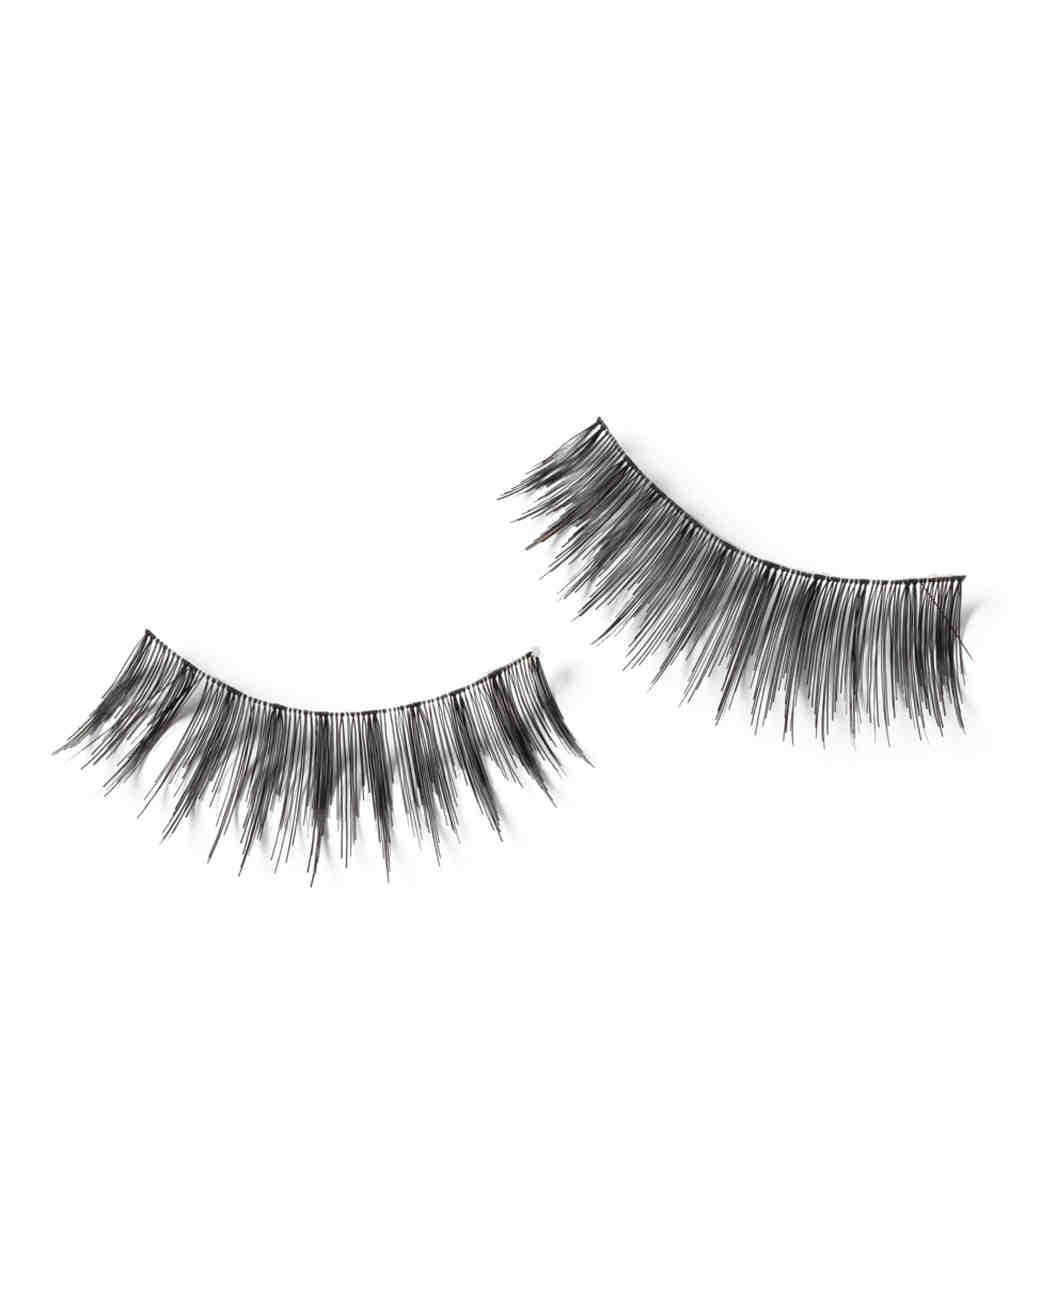 beauty-revlon-eye-lashes-080-md109153.jpg